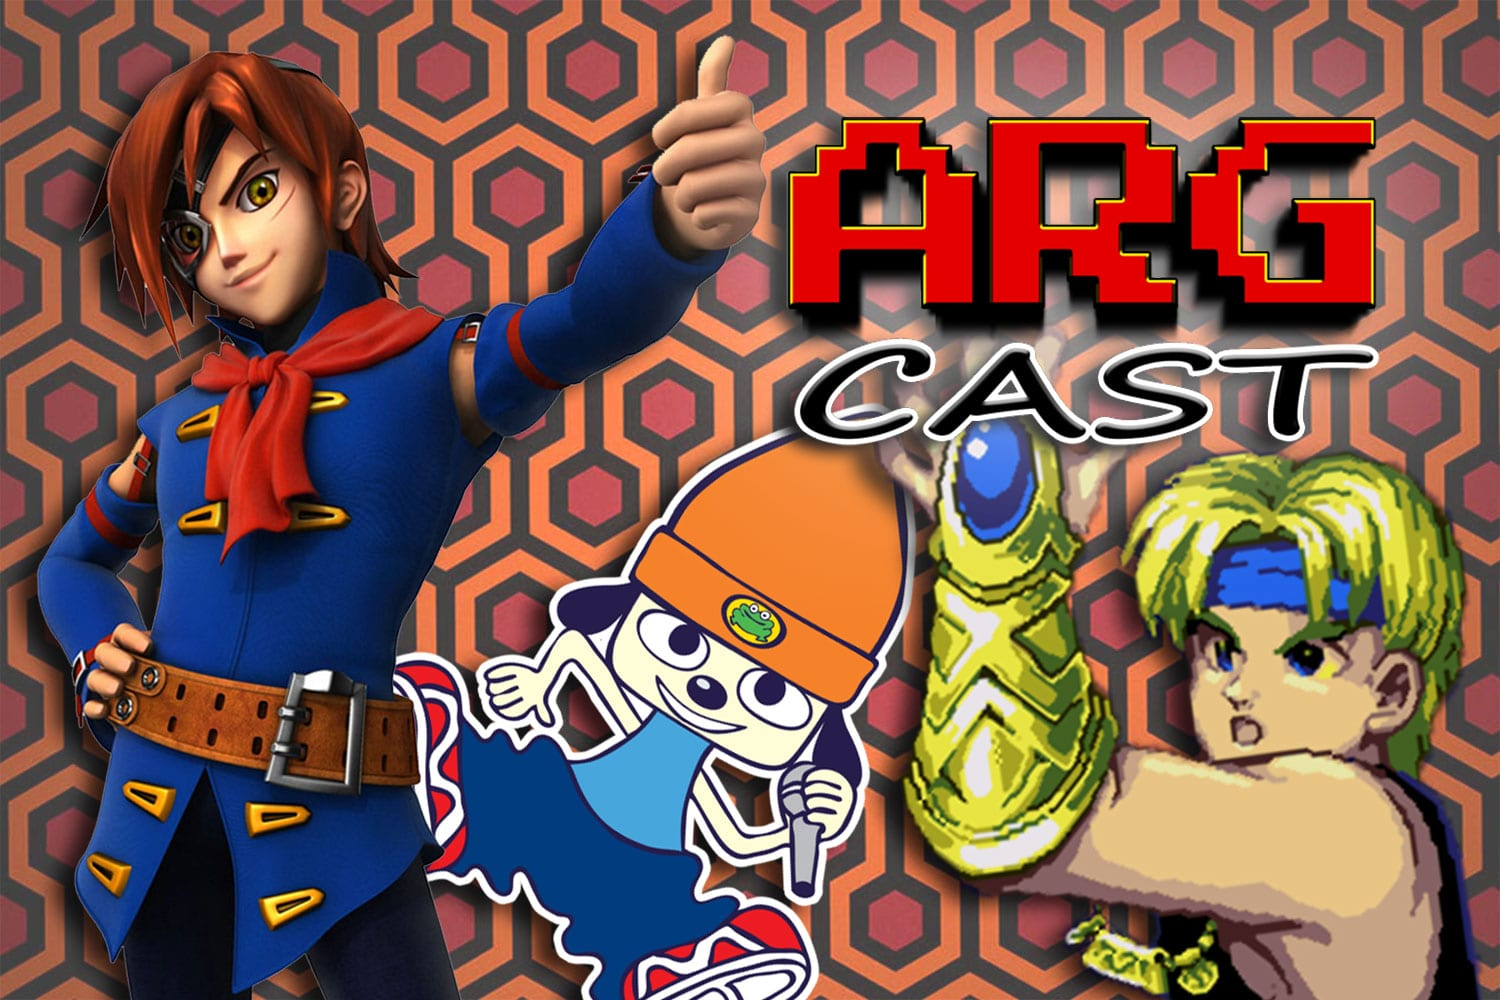 ARGcast #145: Cult Classic Games and Studios with Patrick Hickey Jr.